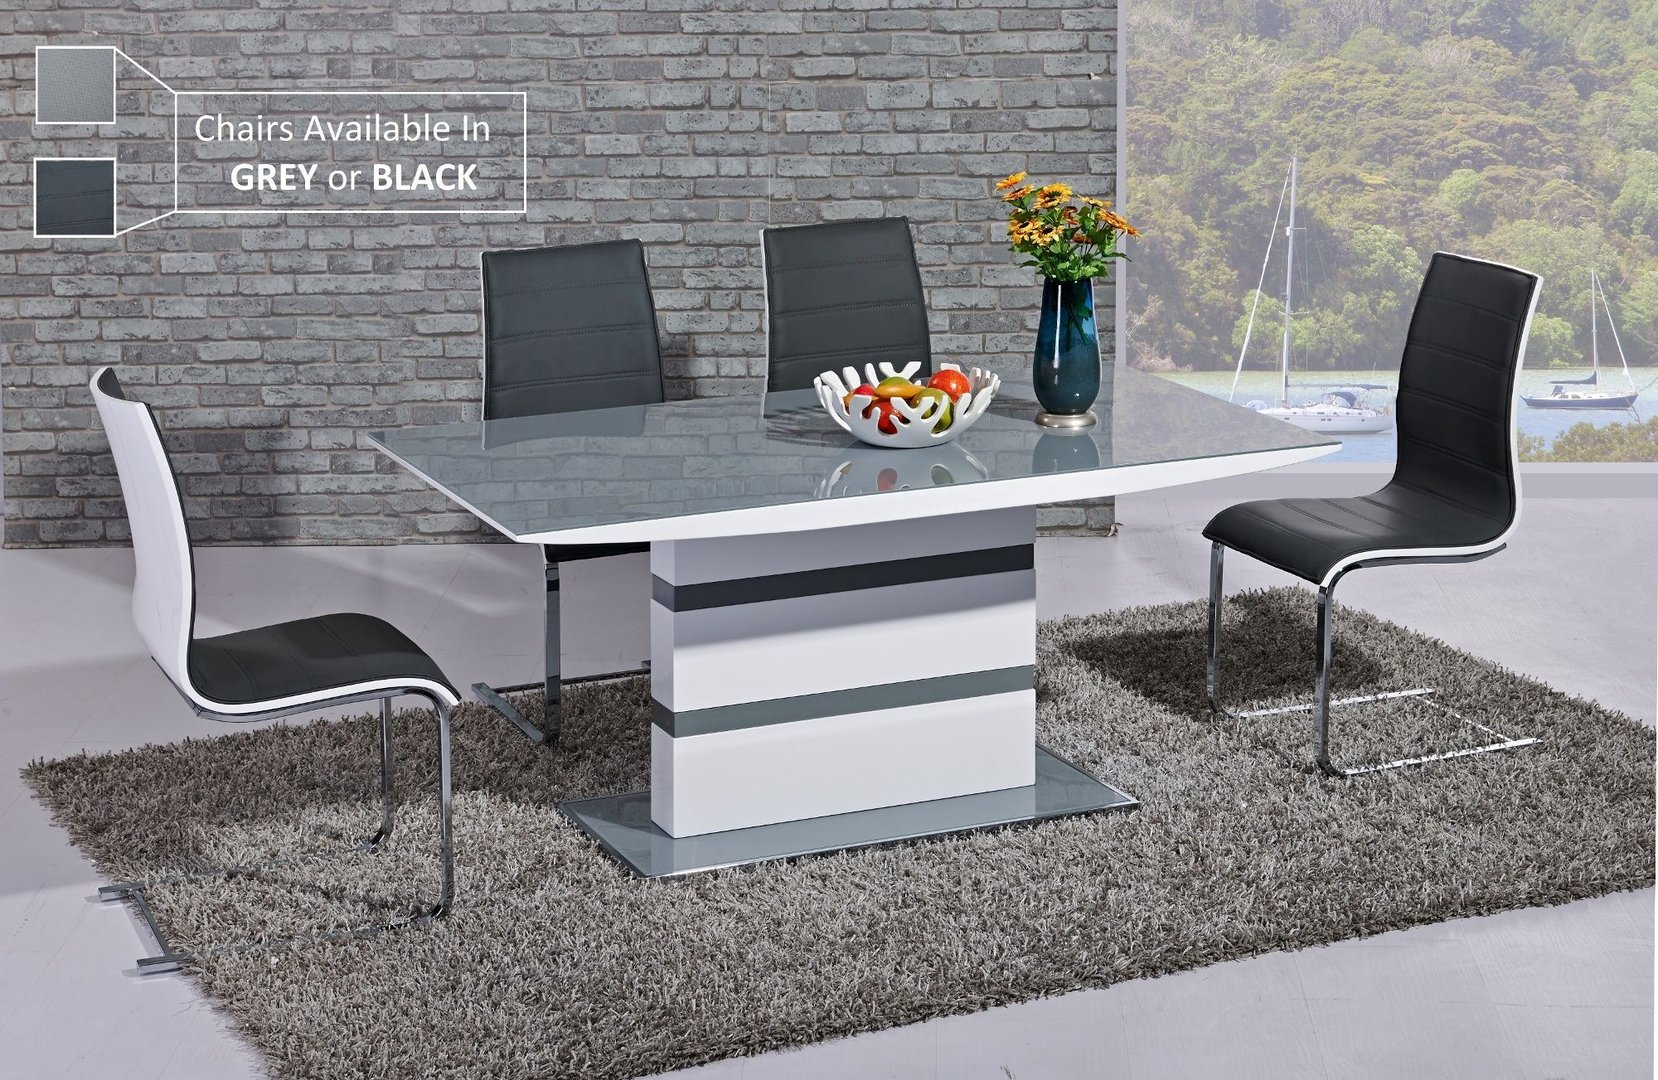 d8830fb5c6f High Dining Table With Chairs. chaffee white high gloss dining table ...